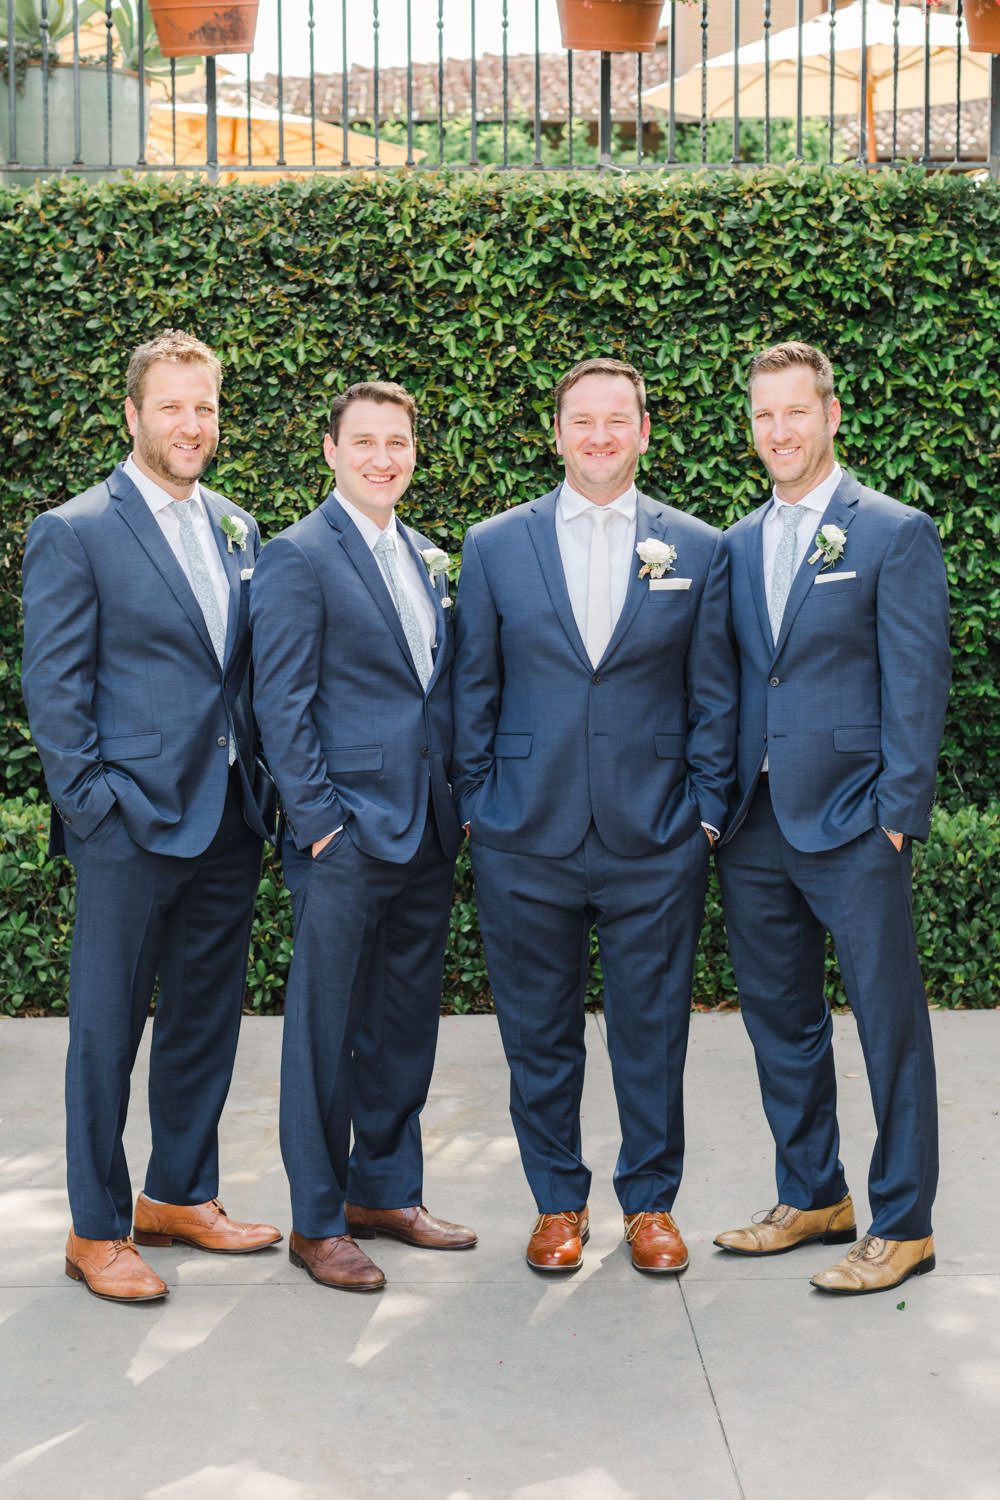 Navy suits for groomsmen, White green and blue wedding at the Santaluz Club, Cavin Elizabeth Photography